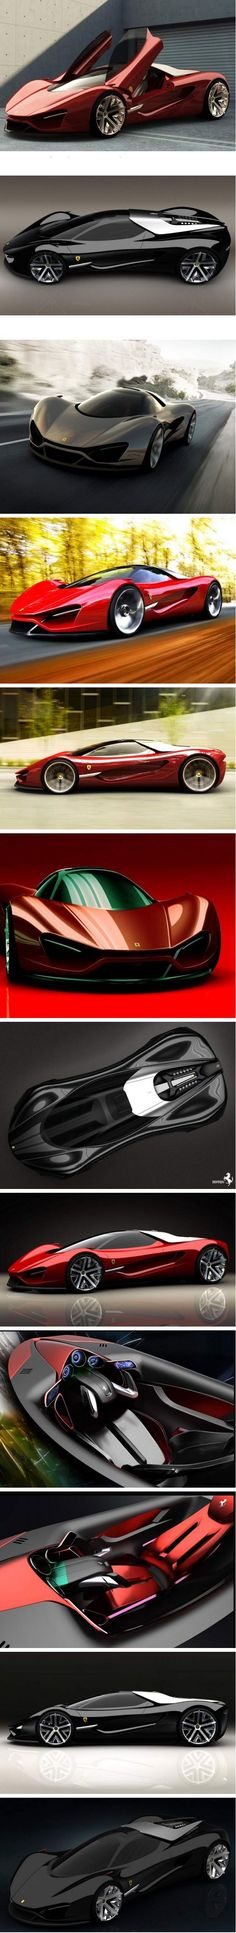 Ferrari Xezri concept   Designed by Samir Sadikhov    I wish it was honda new  NSX....